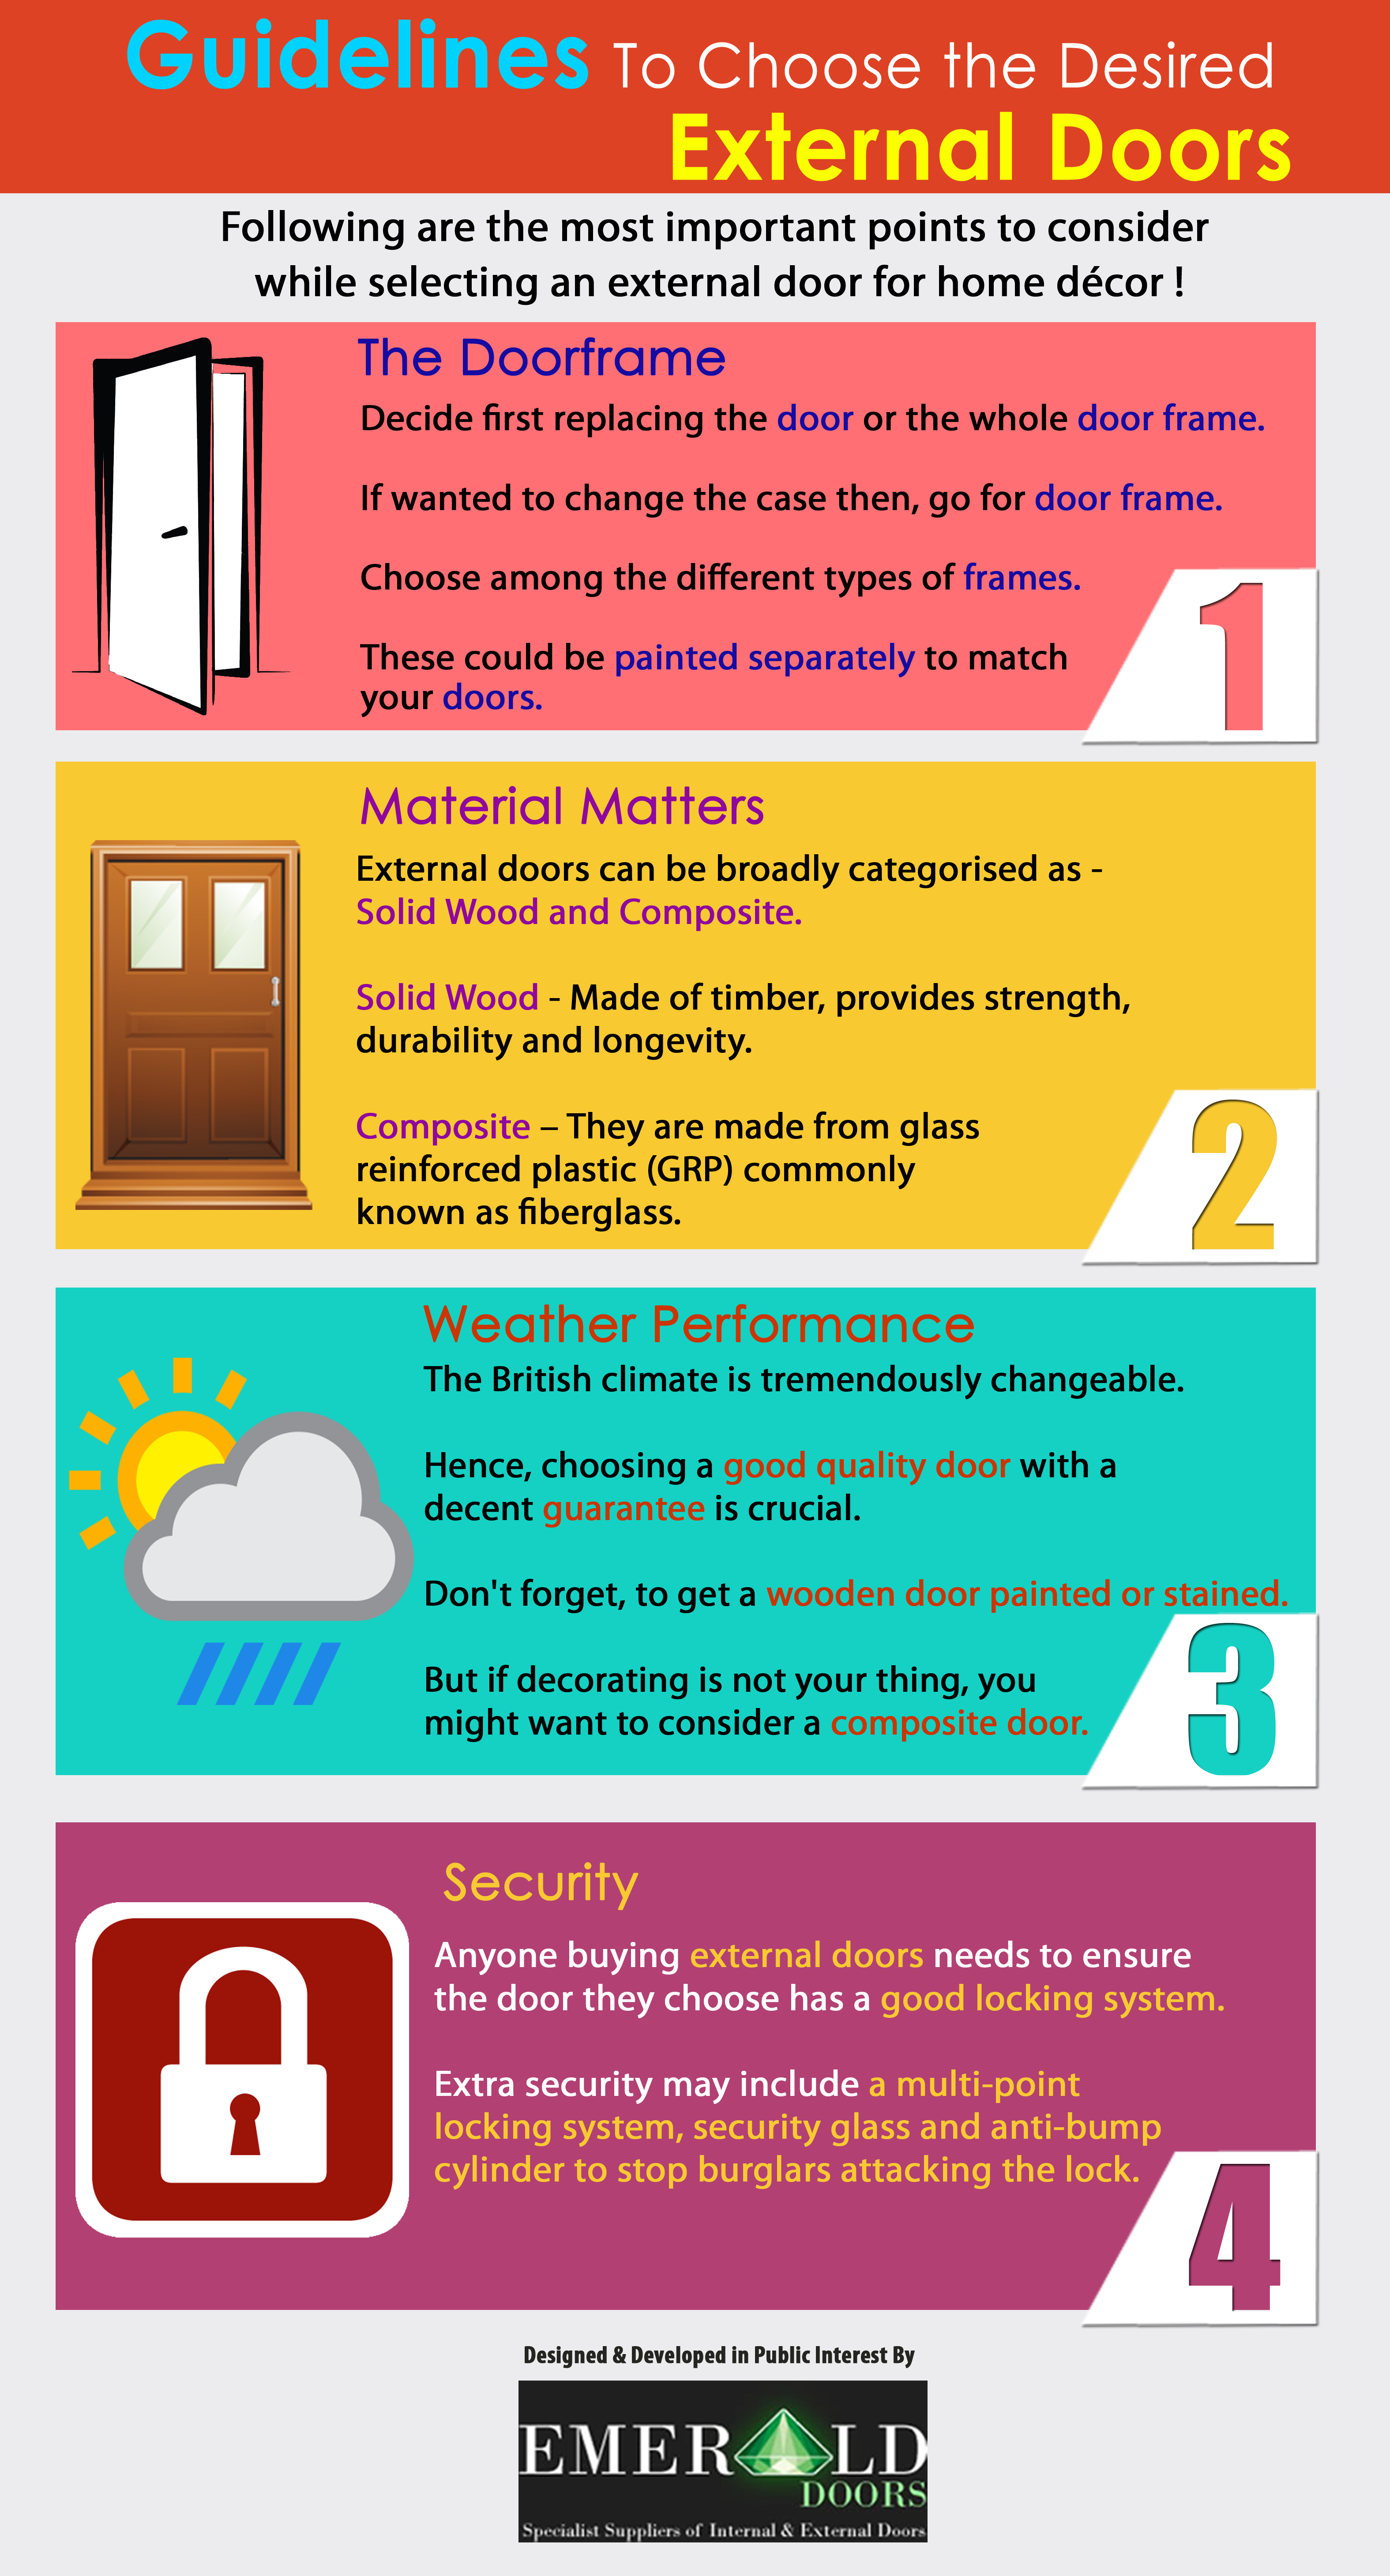 guide-to-choose-exterior-doors